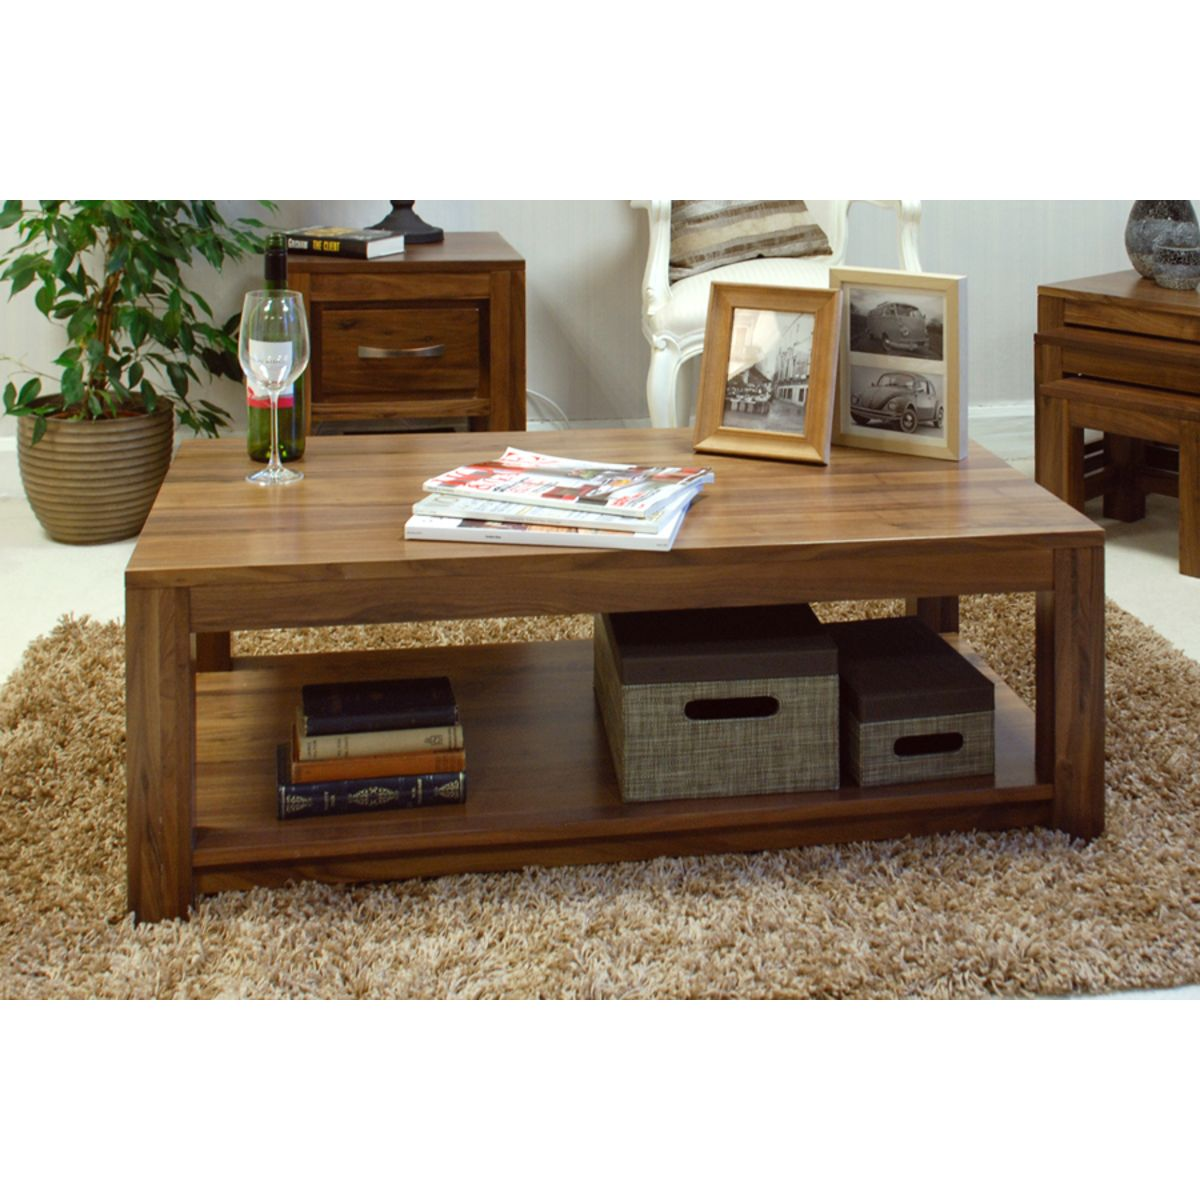 Mayan Walnut Open Coffee Table Wooden Furniture Store